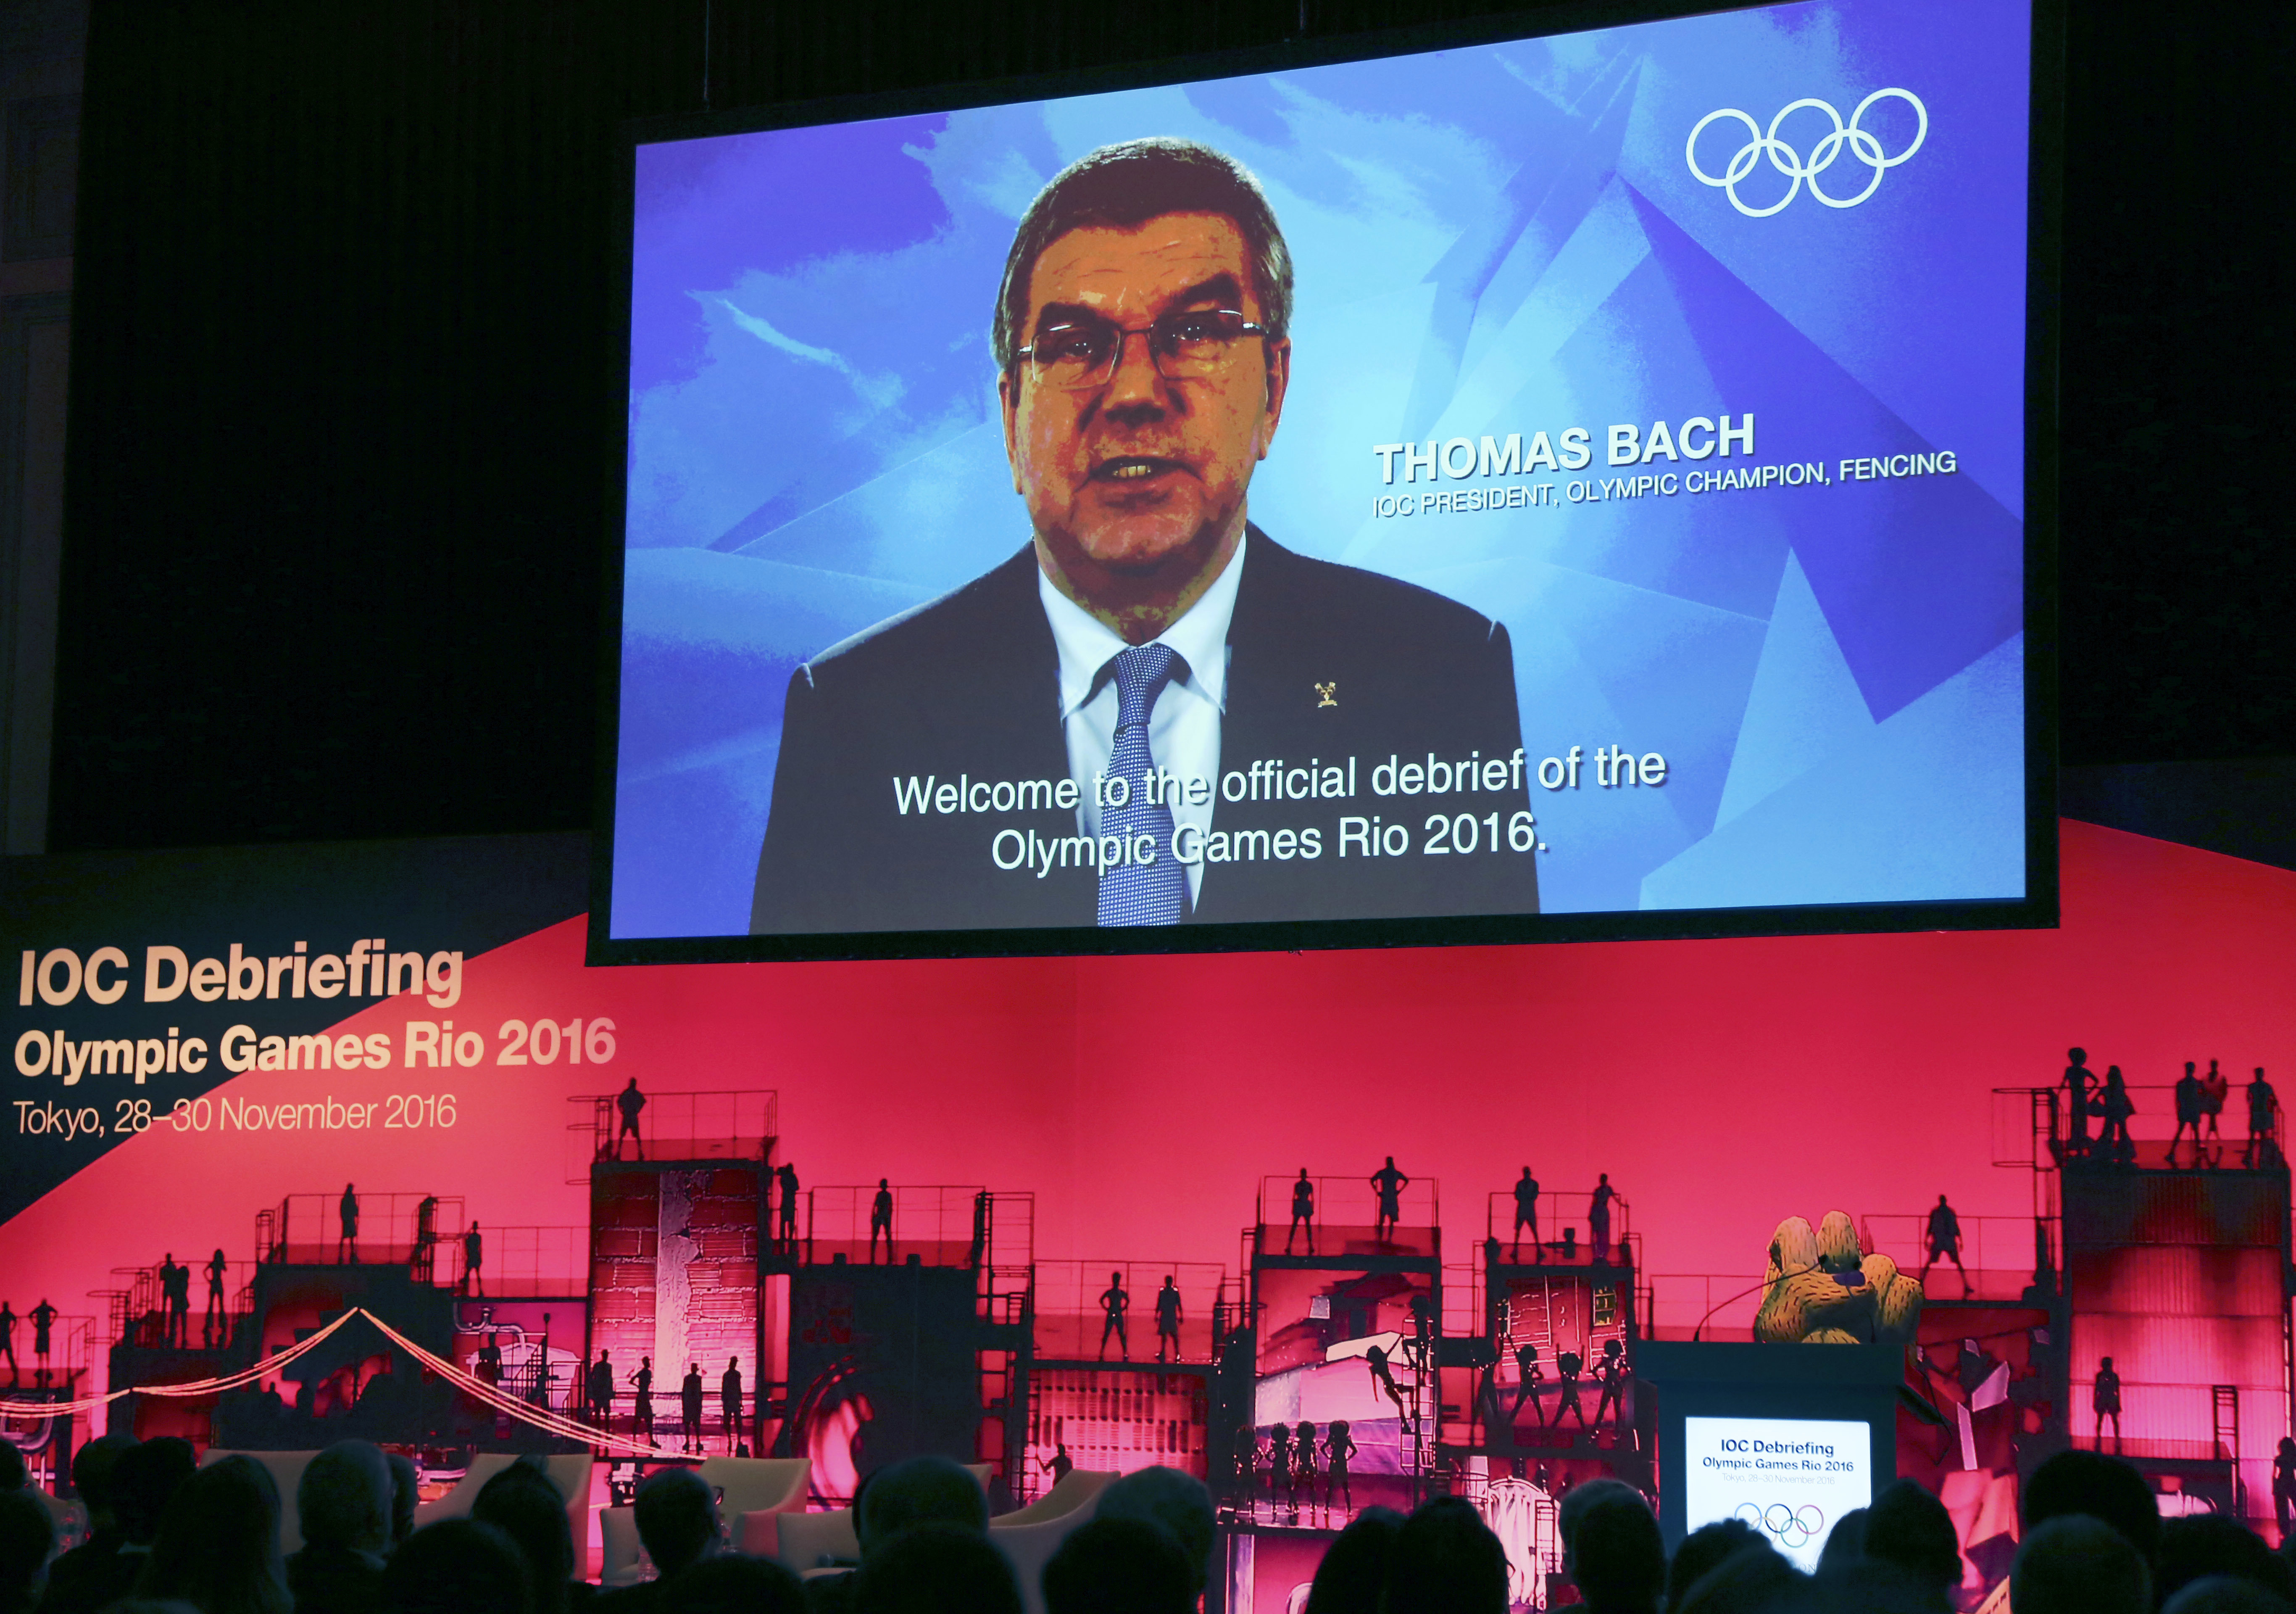 A huge screen shows International Olympic Committee President Thomas Bach's video message during the opening plenary session of the IOC Debriefing of the Olympic Games Rio 2016 in Tokyo, Monday, Nov. 28, 2016. The three-day IOC debriefing started Monday t